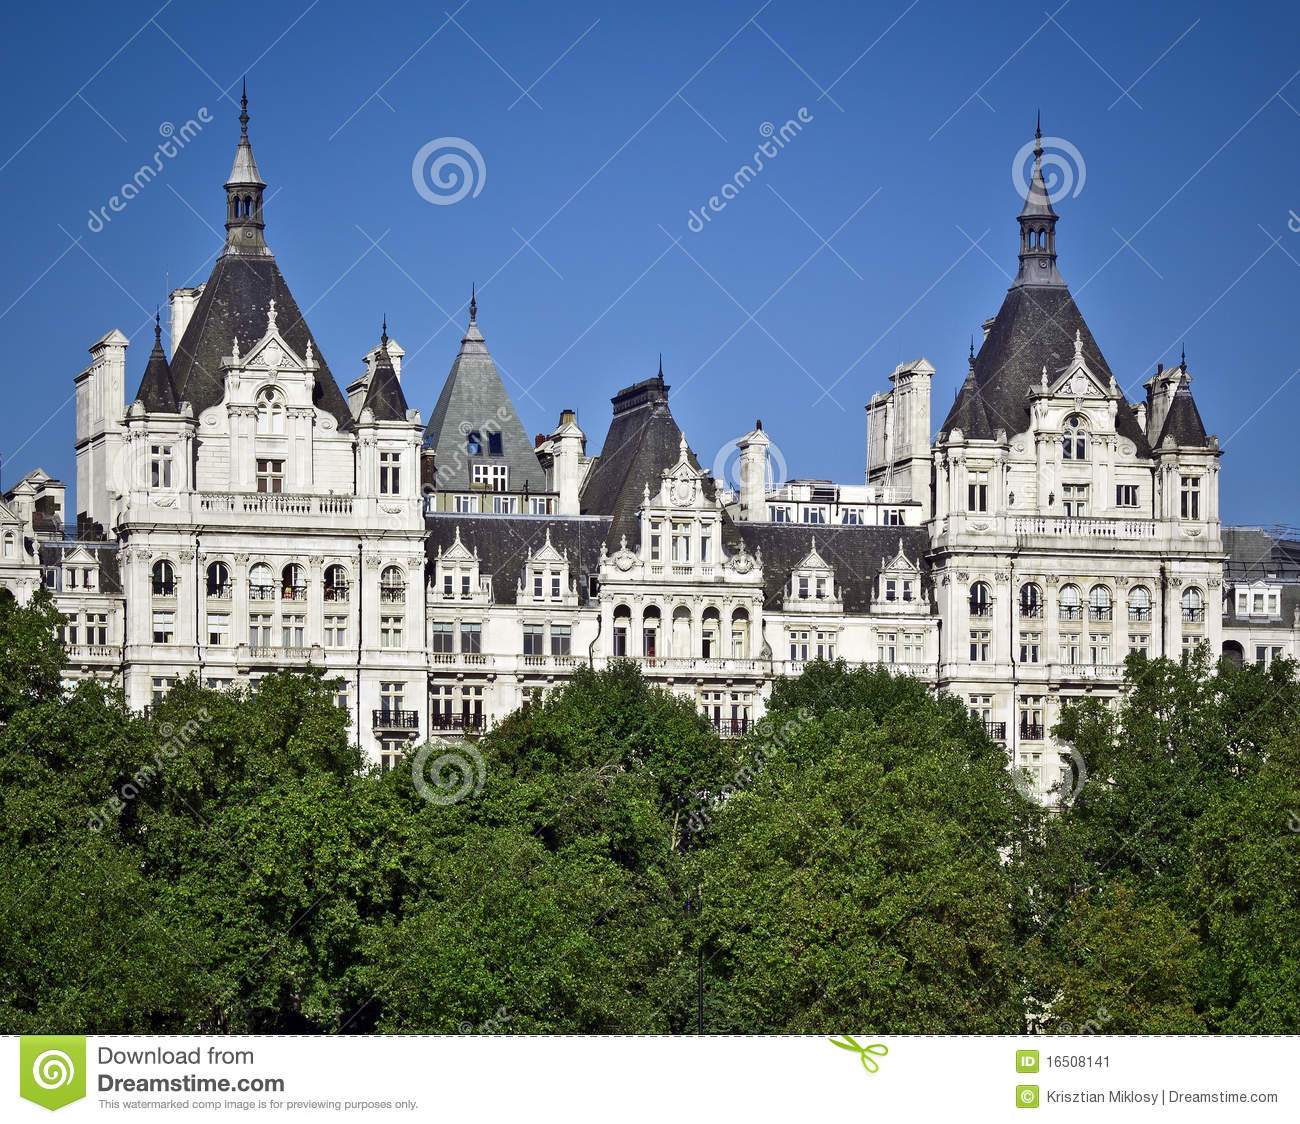 One Whitehall Place, London Stock Image - Image of clear, landmark ...